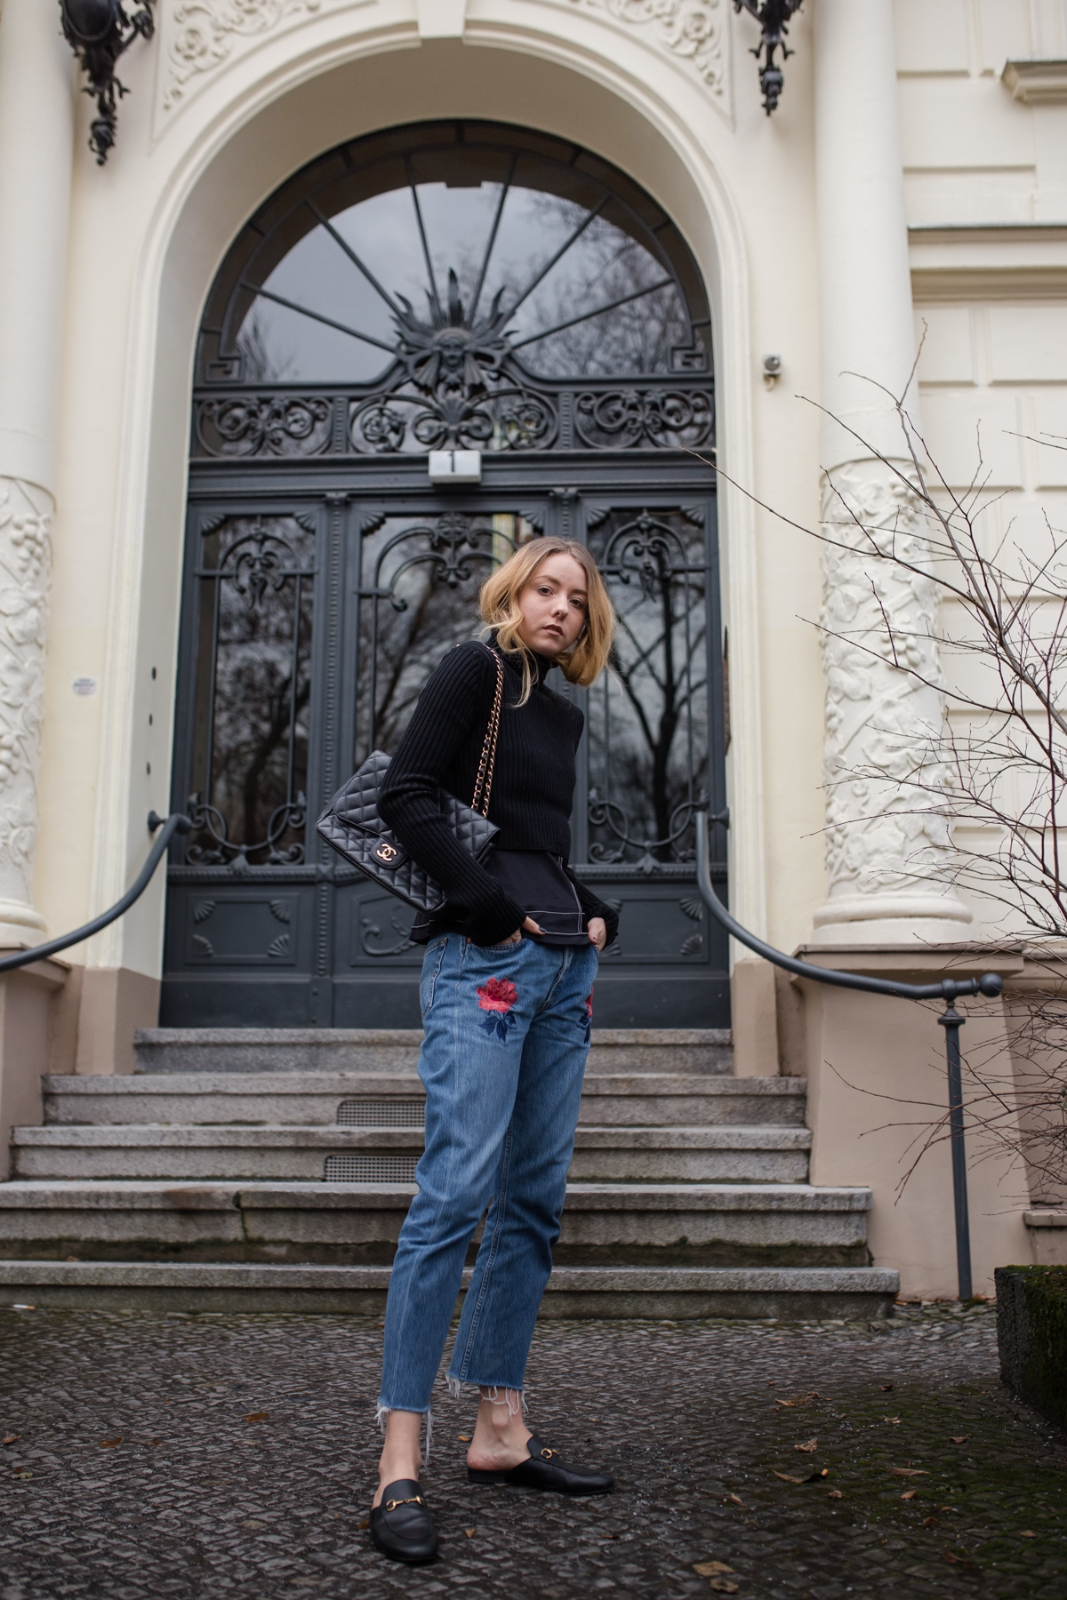 Lovestories_Jeans_Rose_The-Limits-of-Control-Fashion-Fashionblogger-Blogger-Berlin-Deutschland-Modeblog-Modeblogger